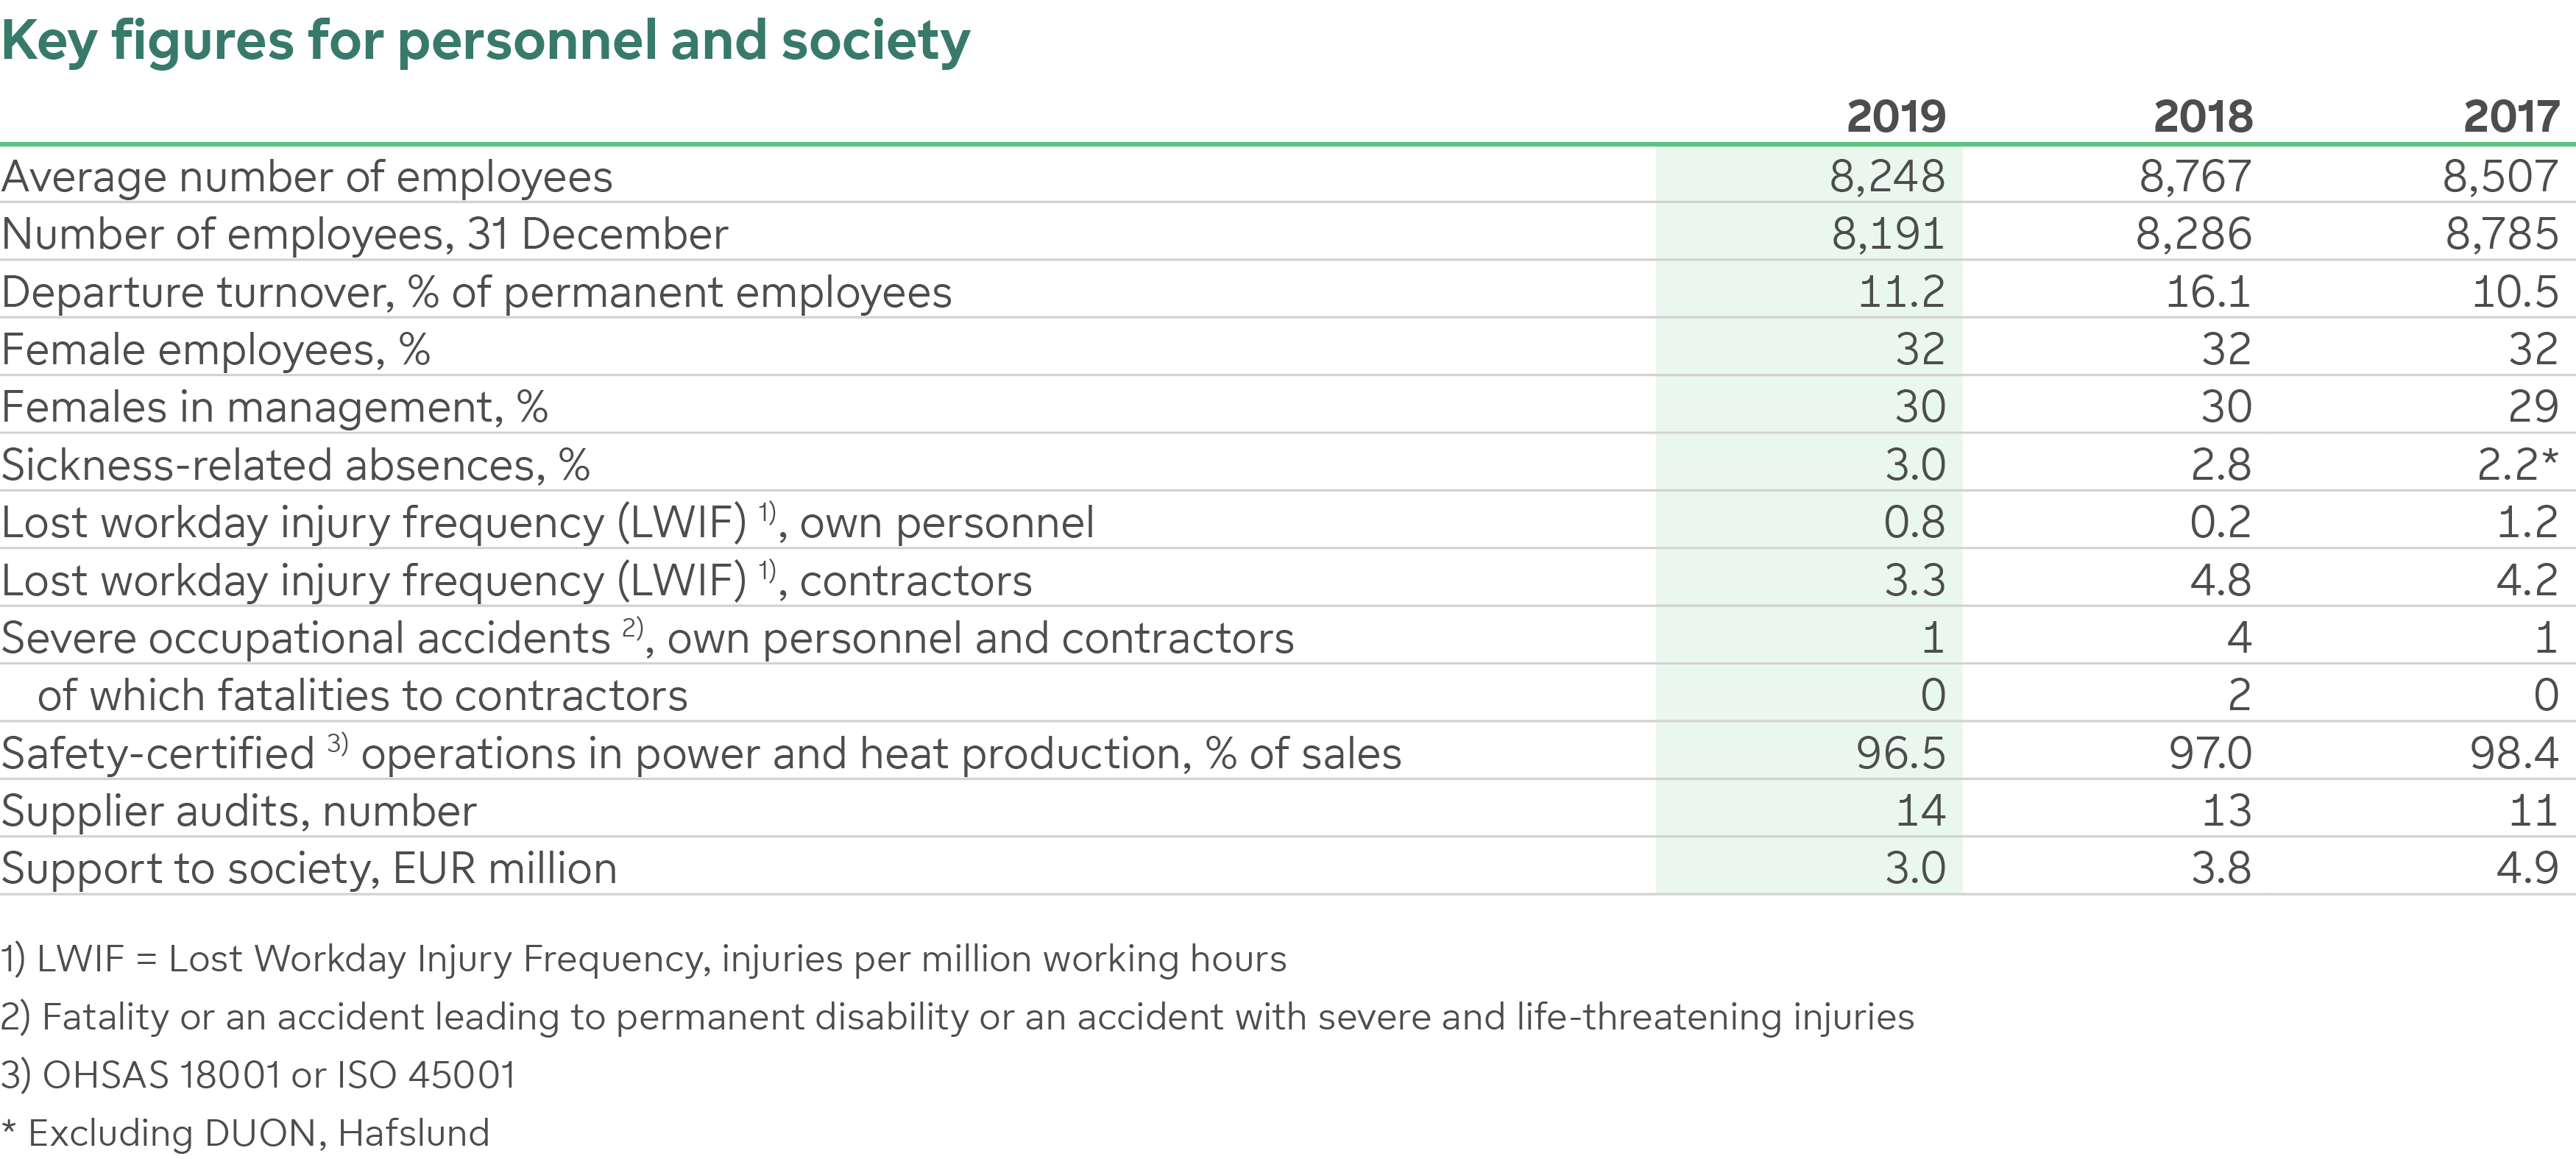 Key figures for personnel and society